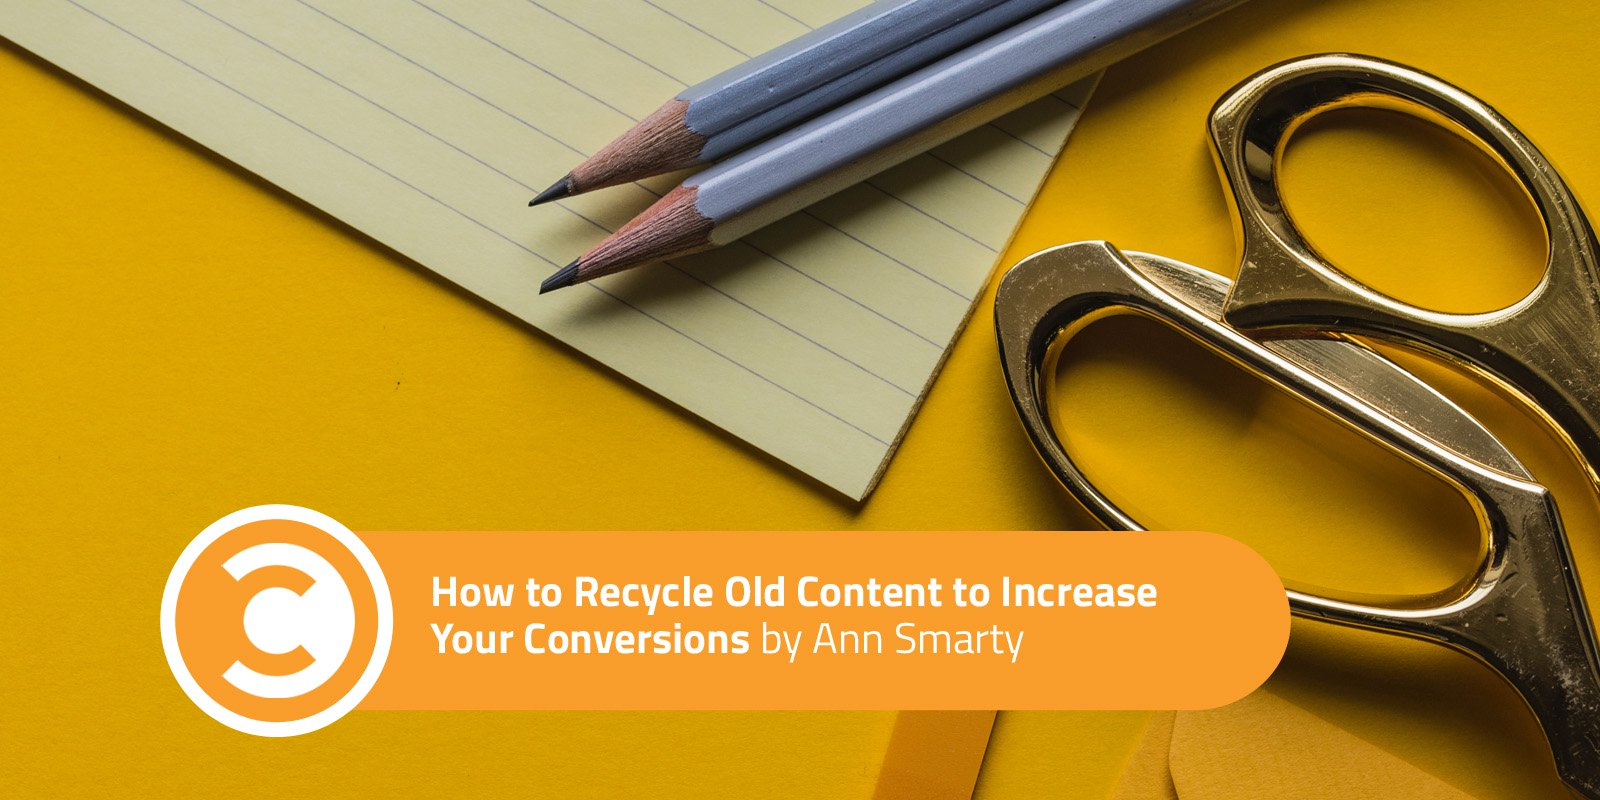 How to Recycle Old Content to Increase Your Conversions